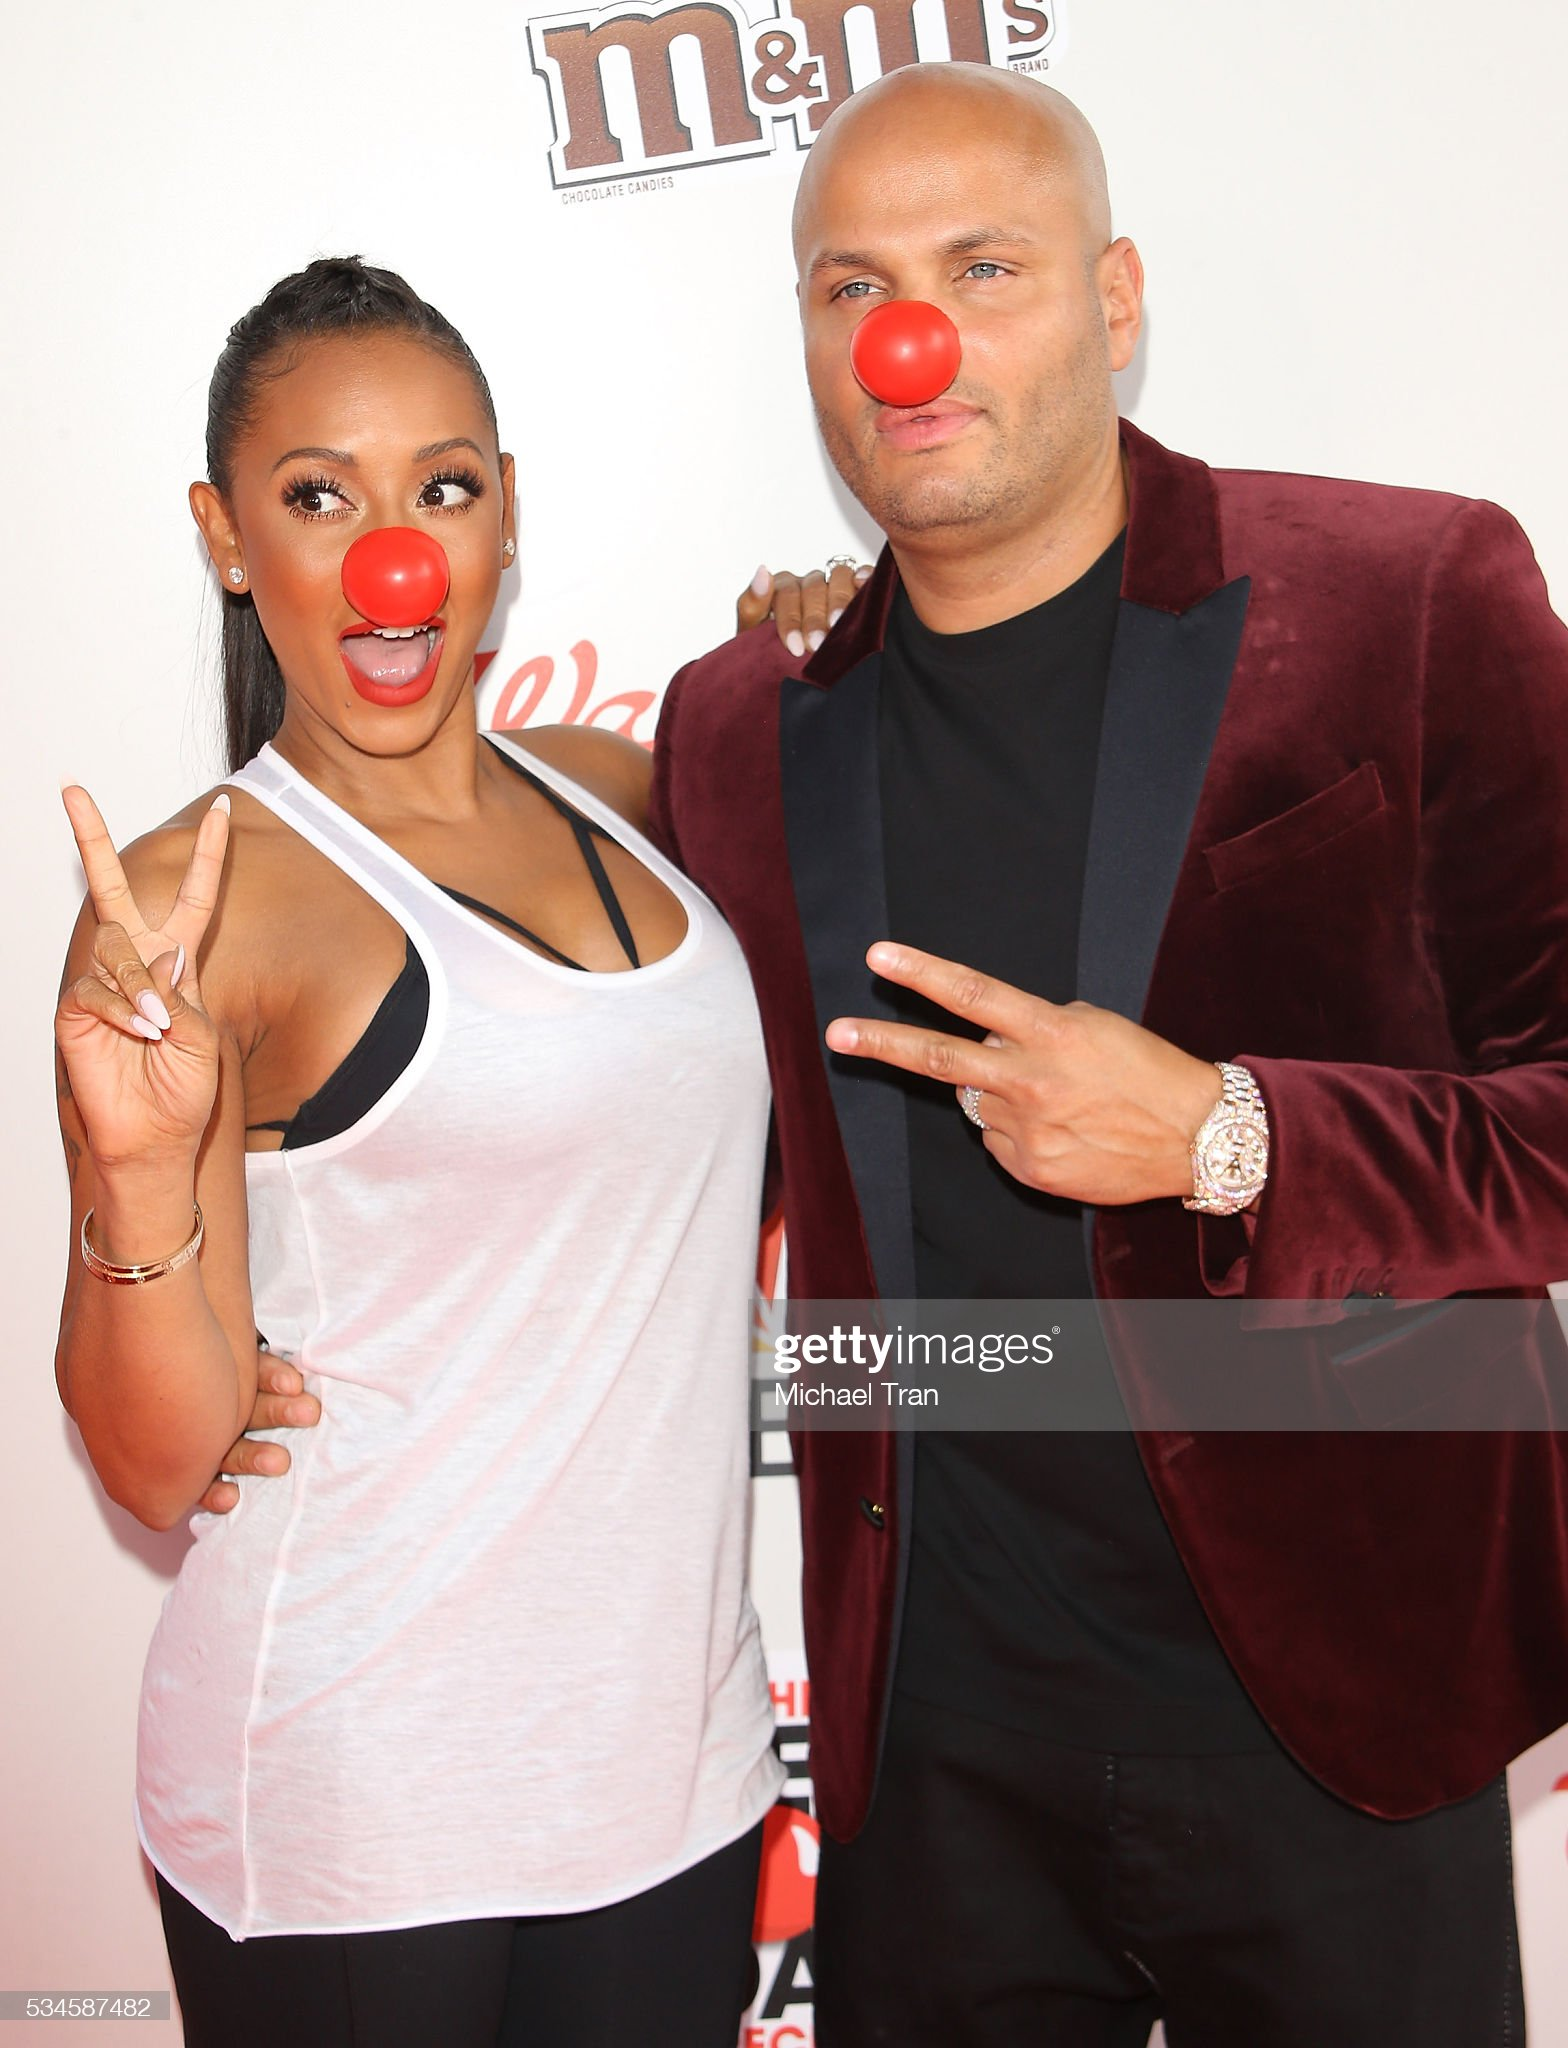 ¿Cuánto mide Stephen Belafonte? - Altura - Real height Mel-b-and-stephen-belafonte-arrive-at-the-red-nose-day-special-event-picture-id534587482?s=2048x2048